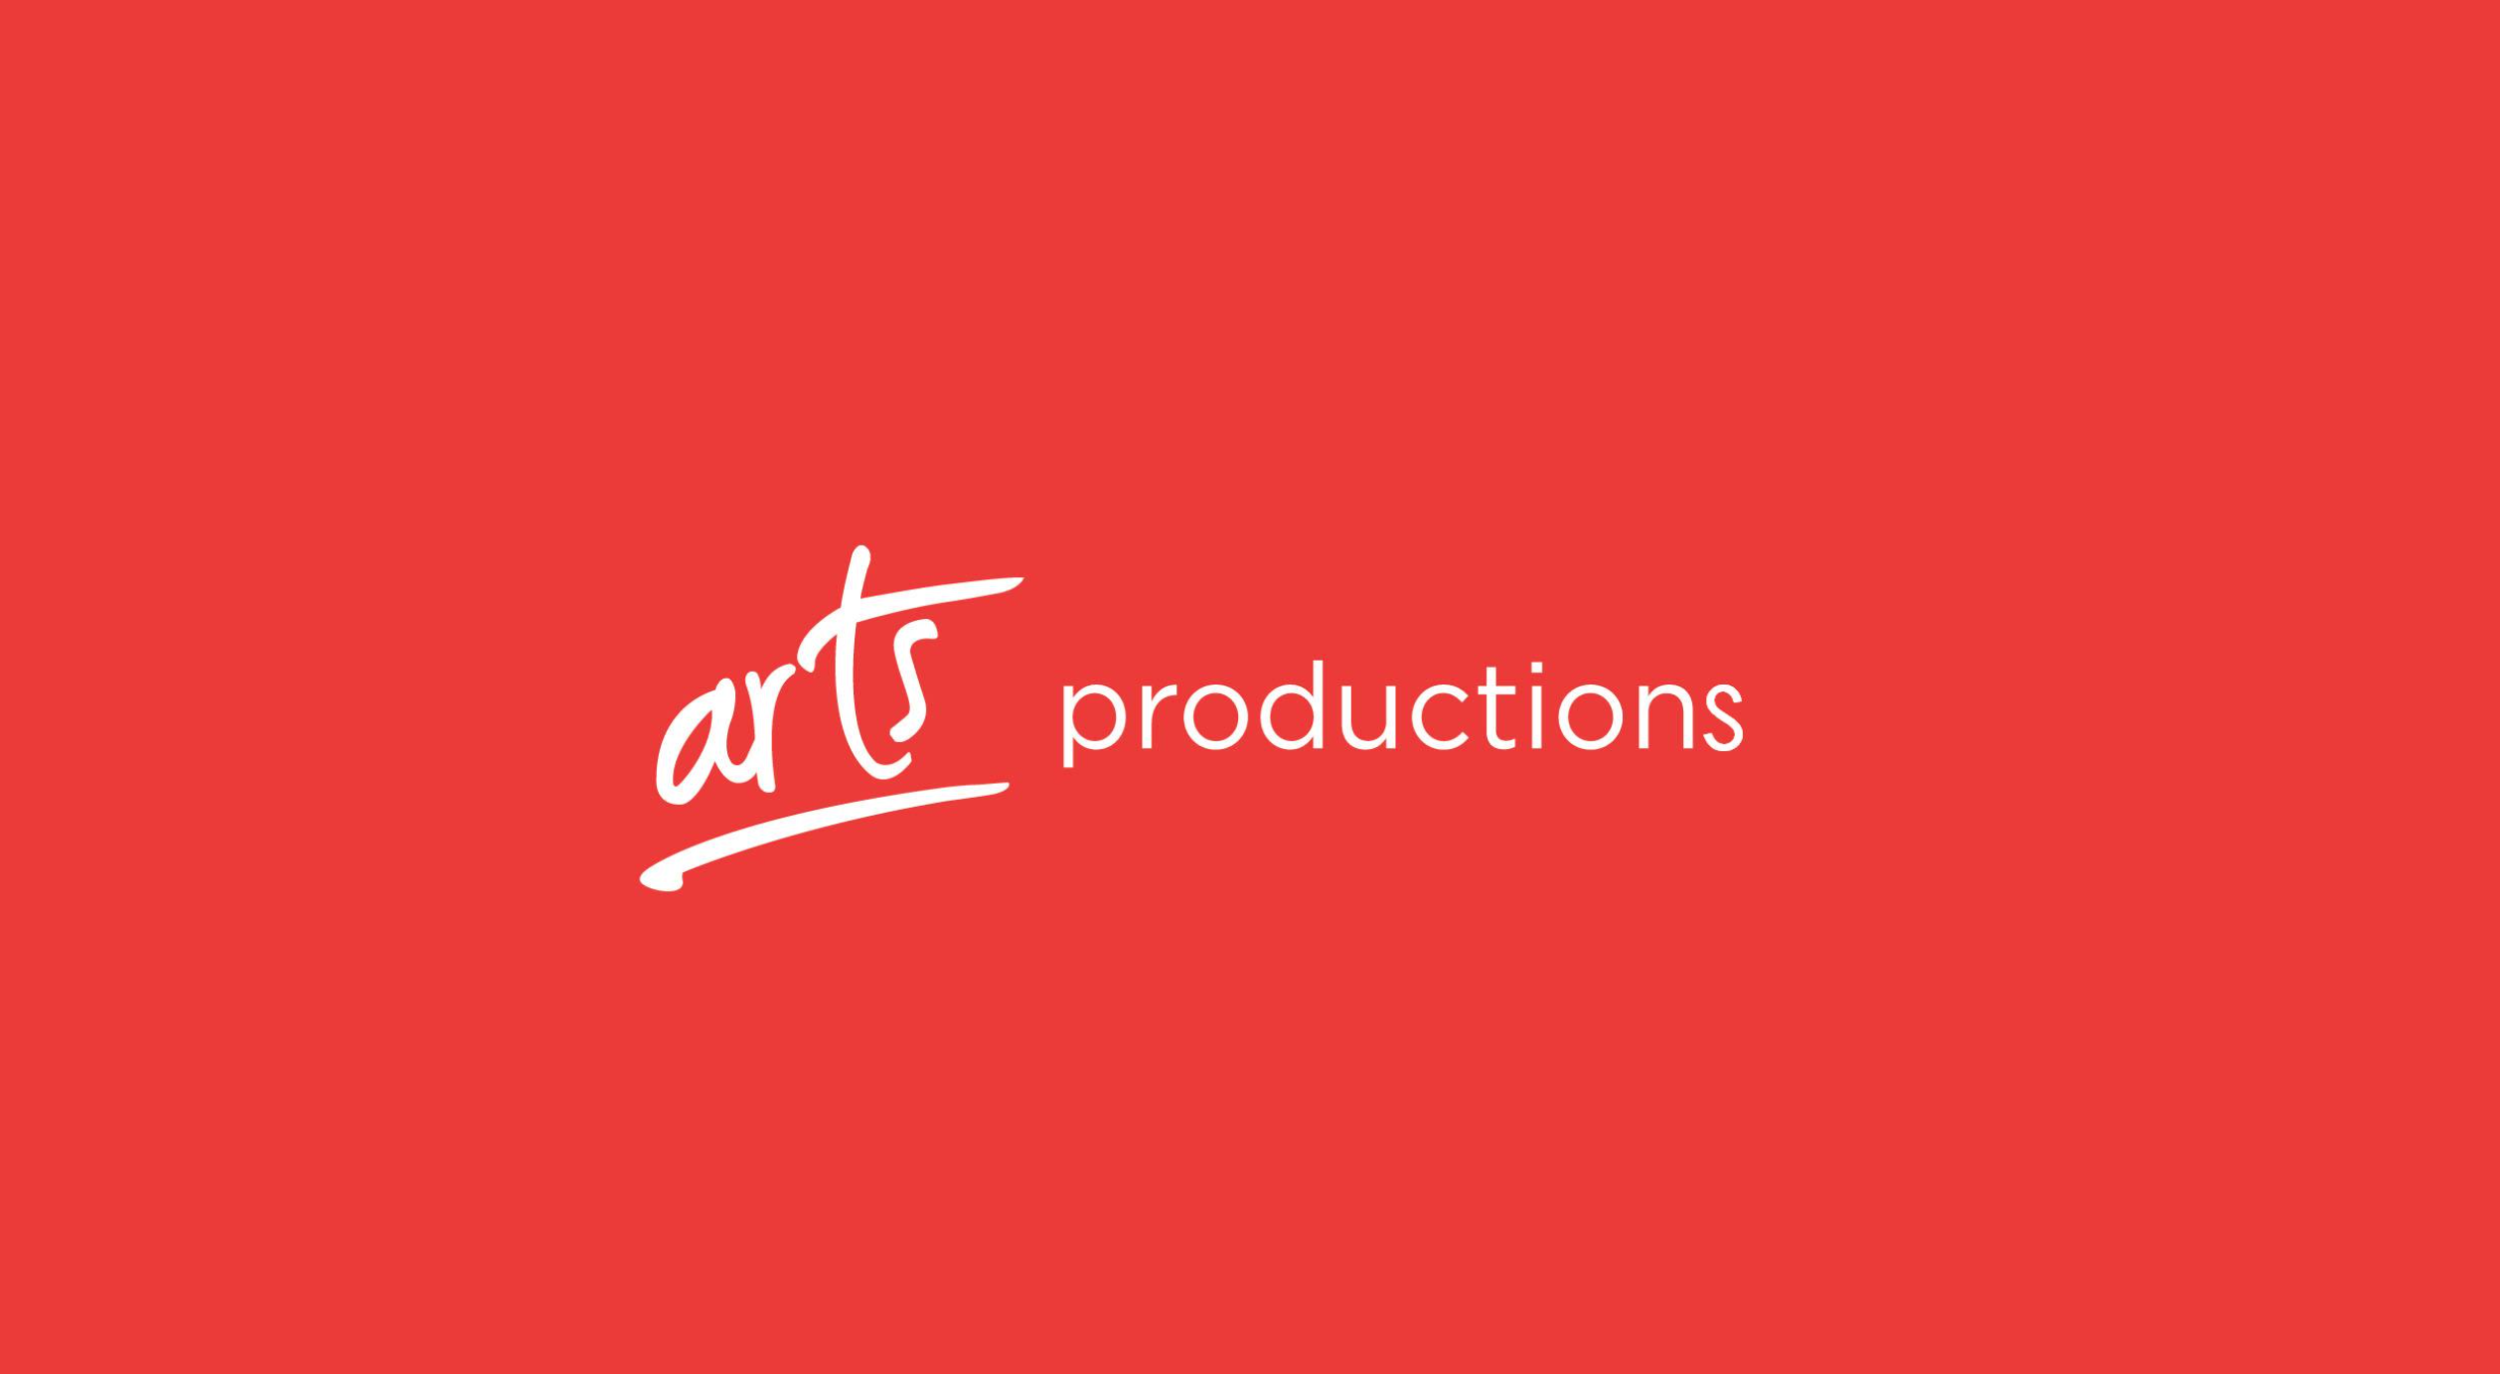 Arts Productions is the Television Production subsidiary of The Arts Group